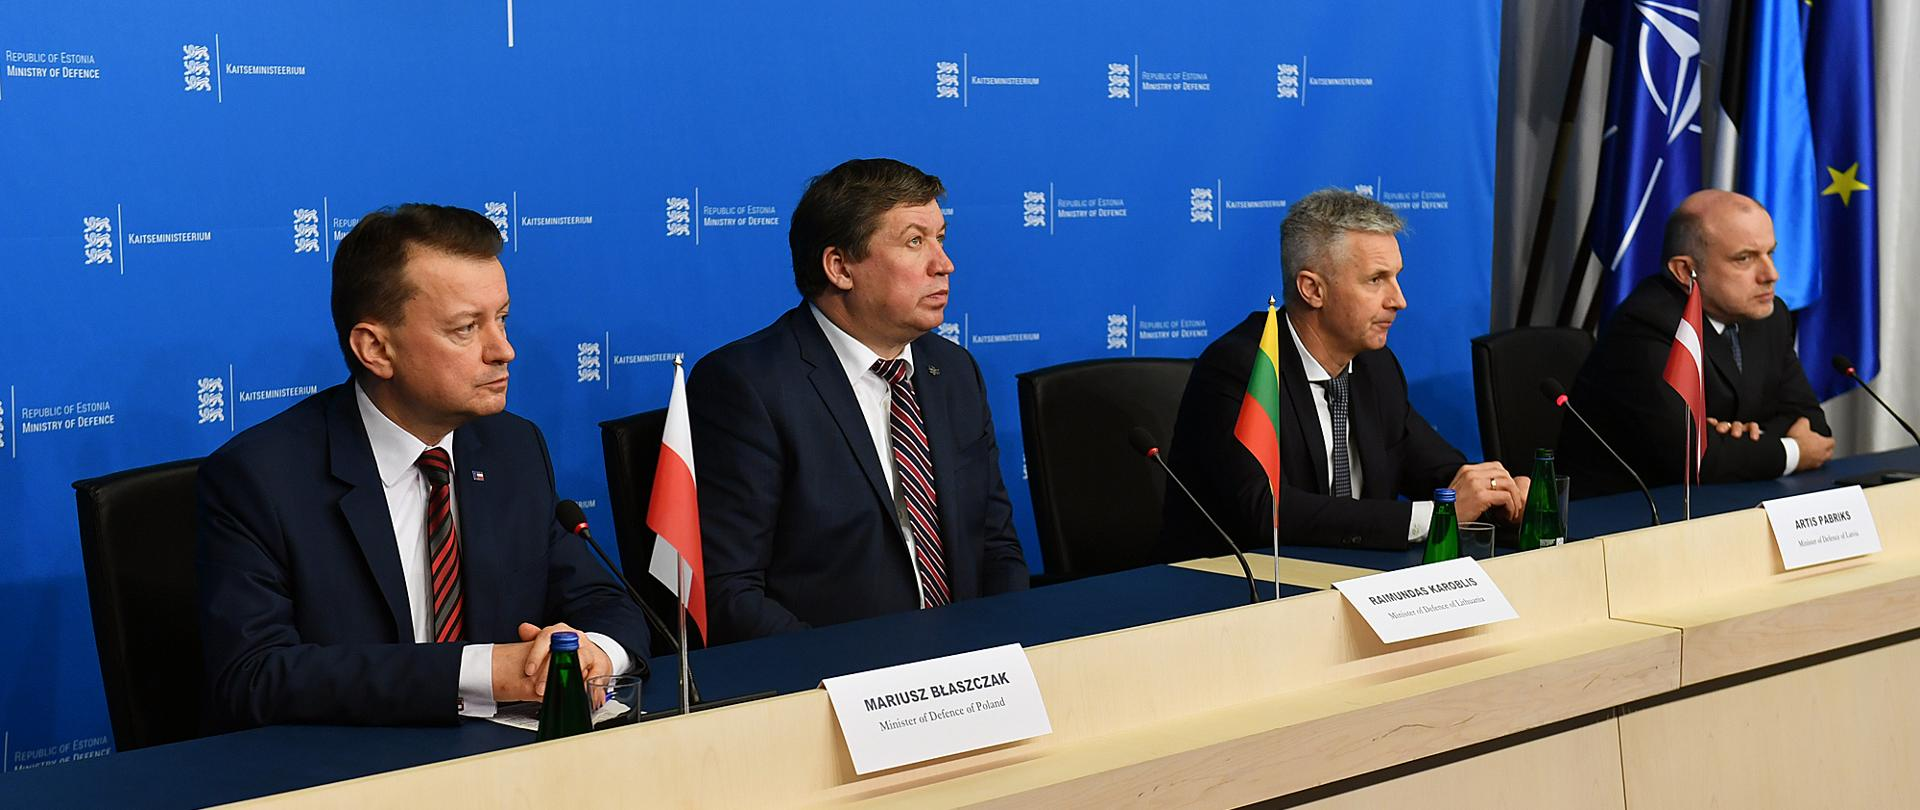 Press conference of the defence ministers of the Baltic States and Poland